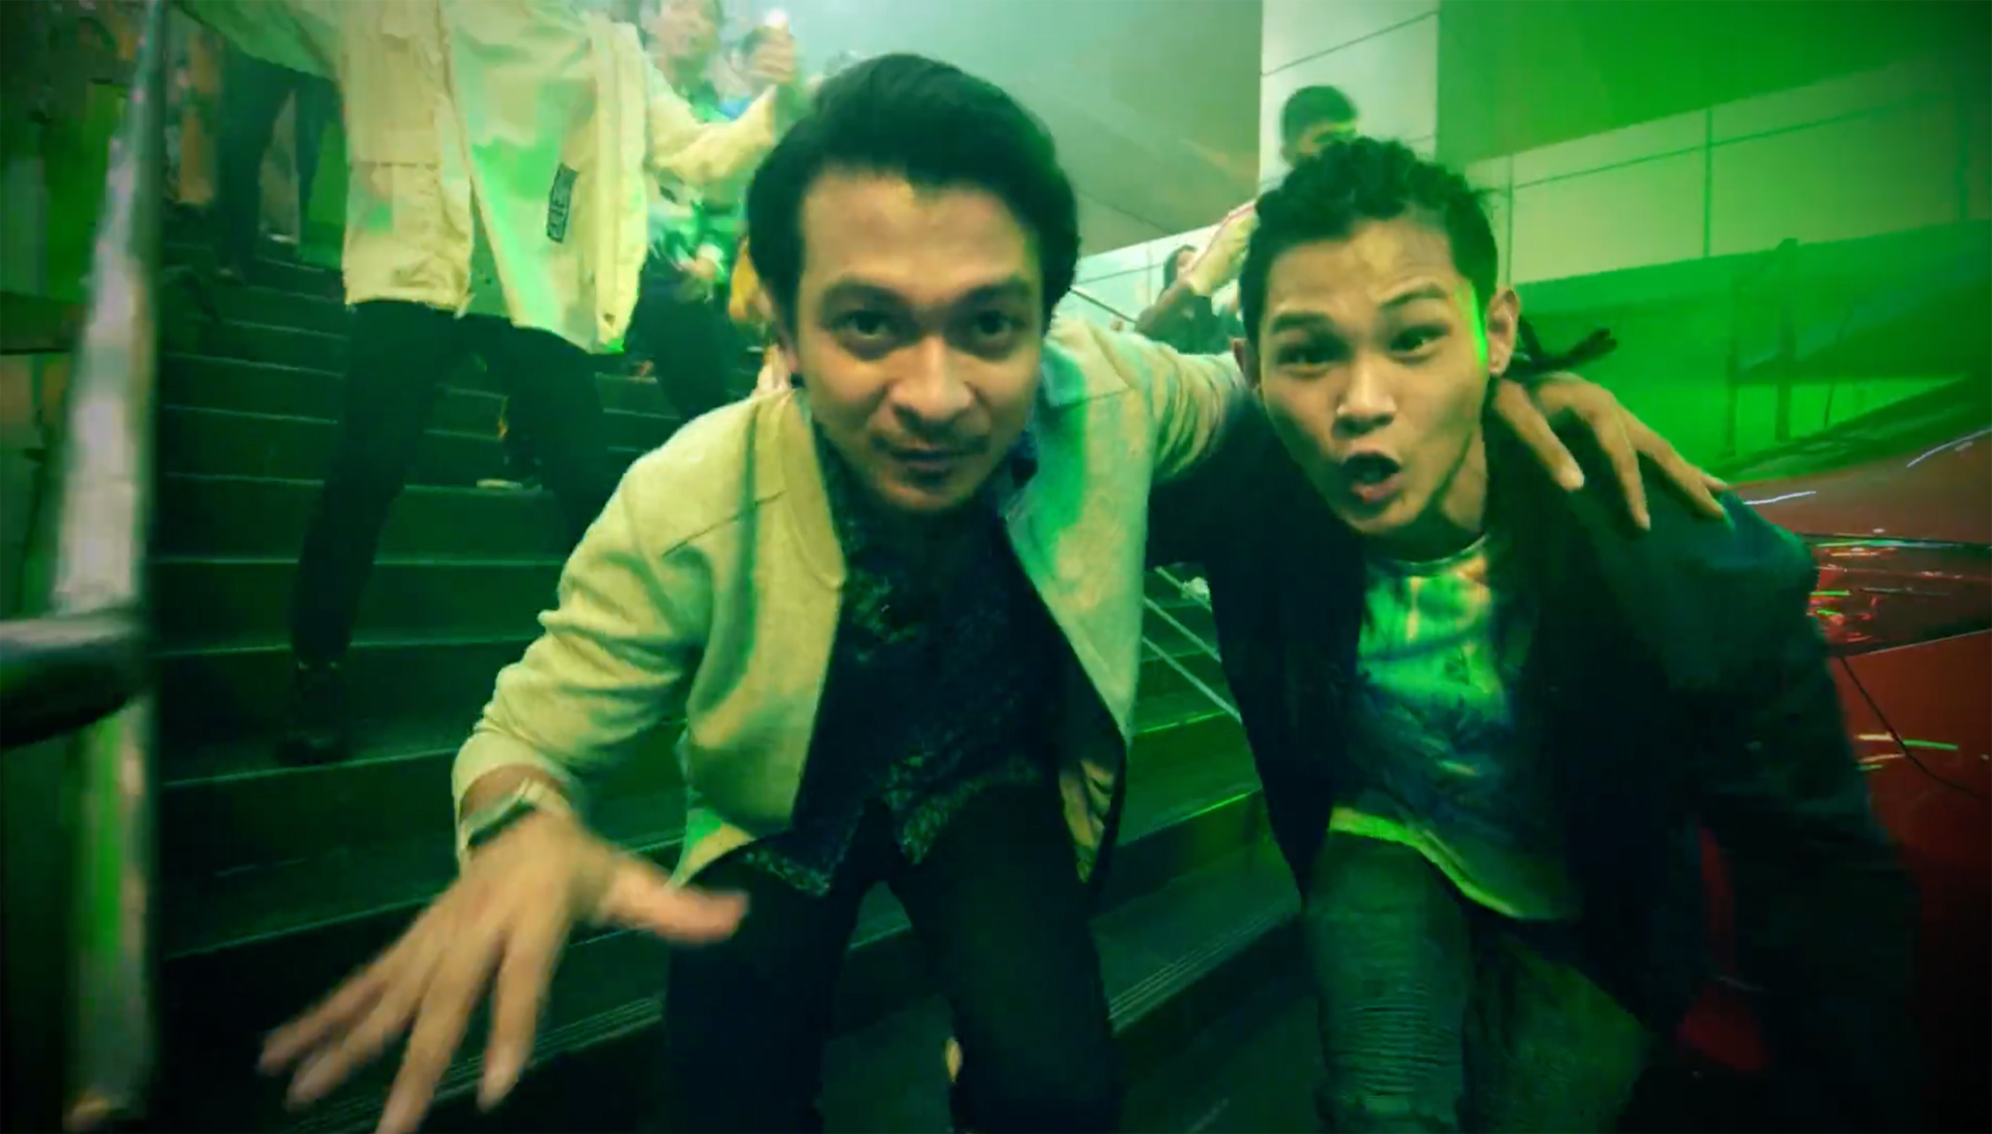 Syn works with beatboxer Shawn Lee and actor Shukri Yahaya on new Toyota Malaysia music video